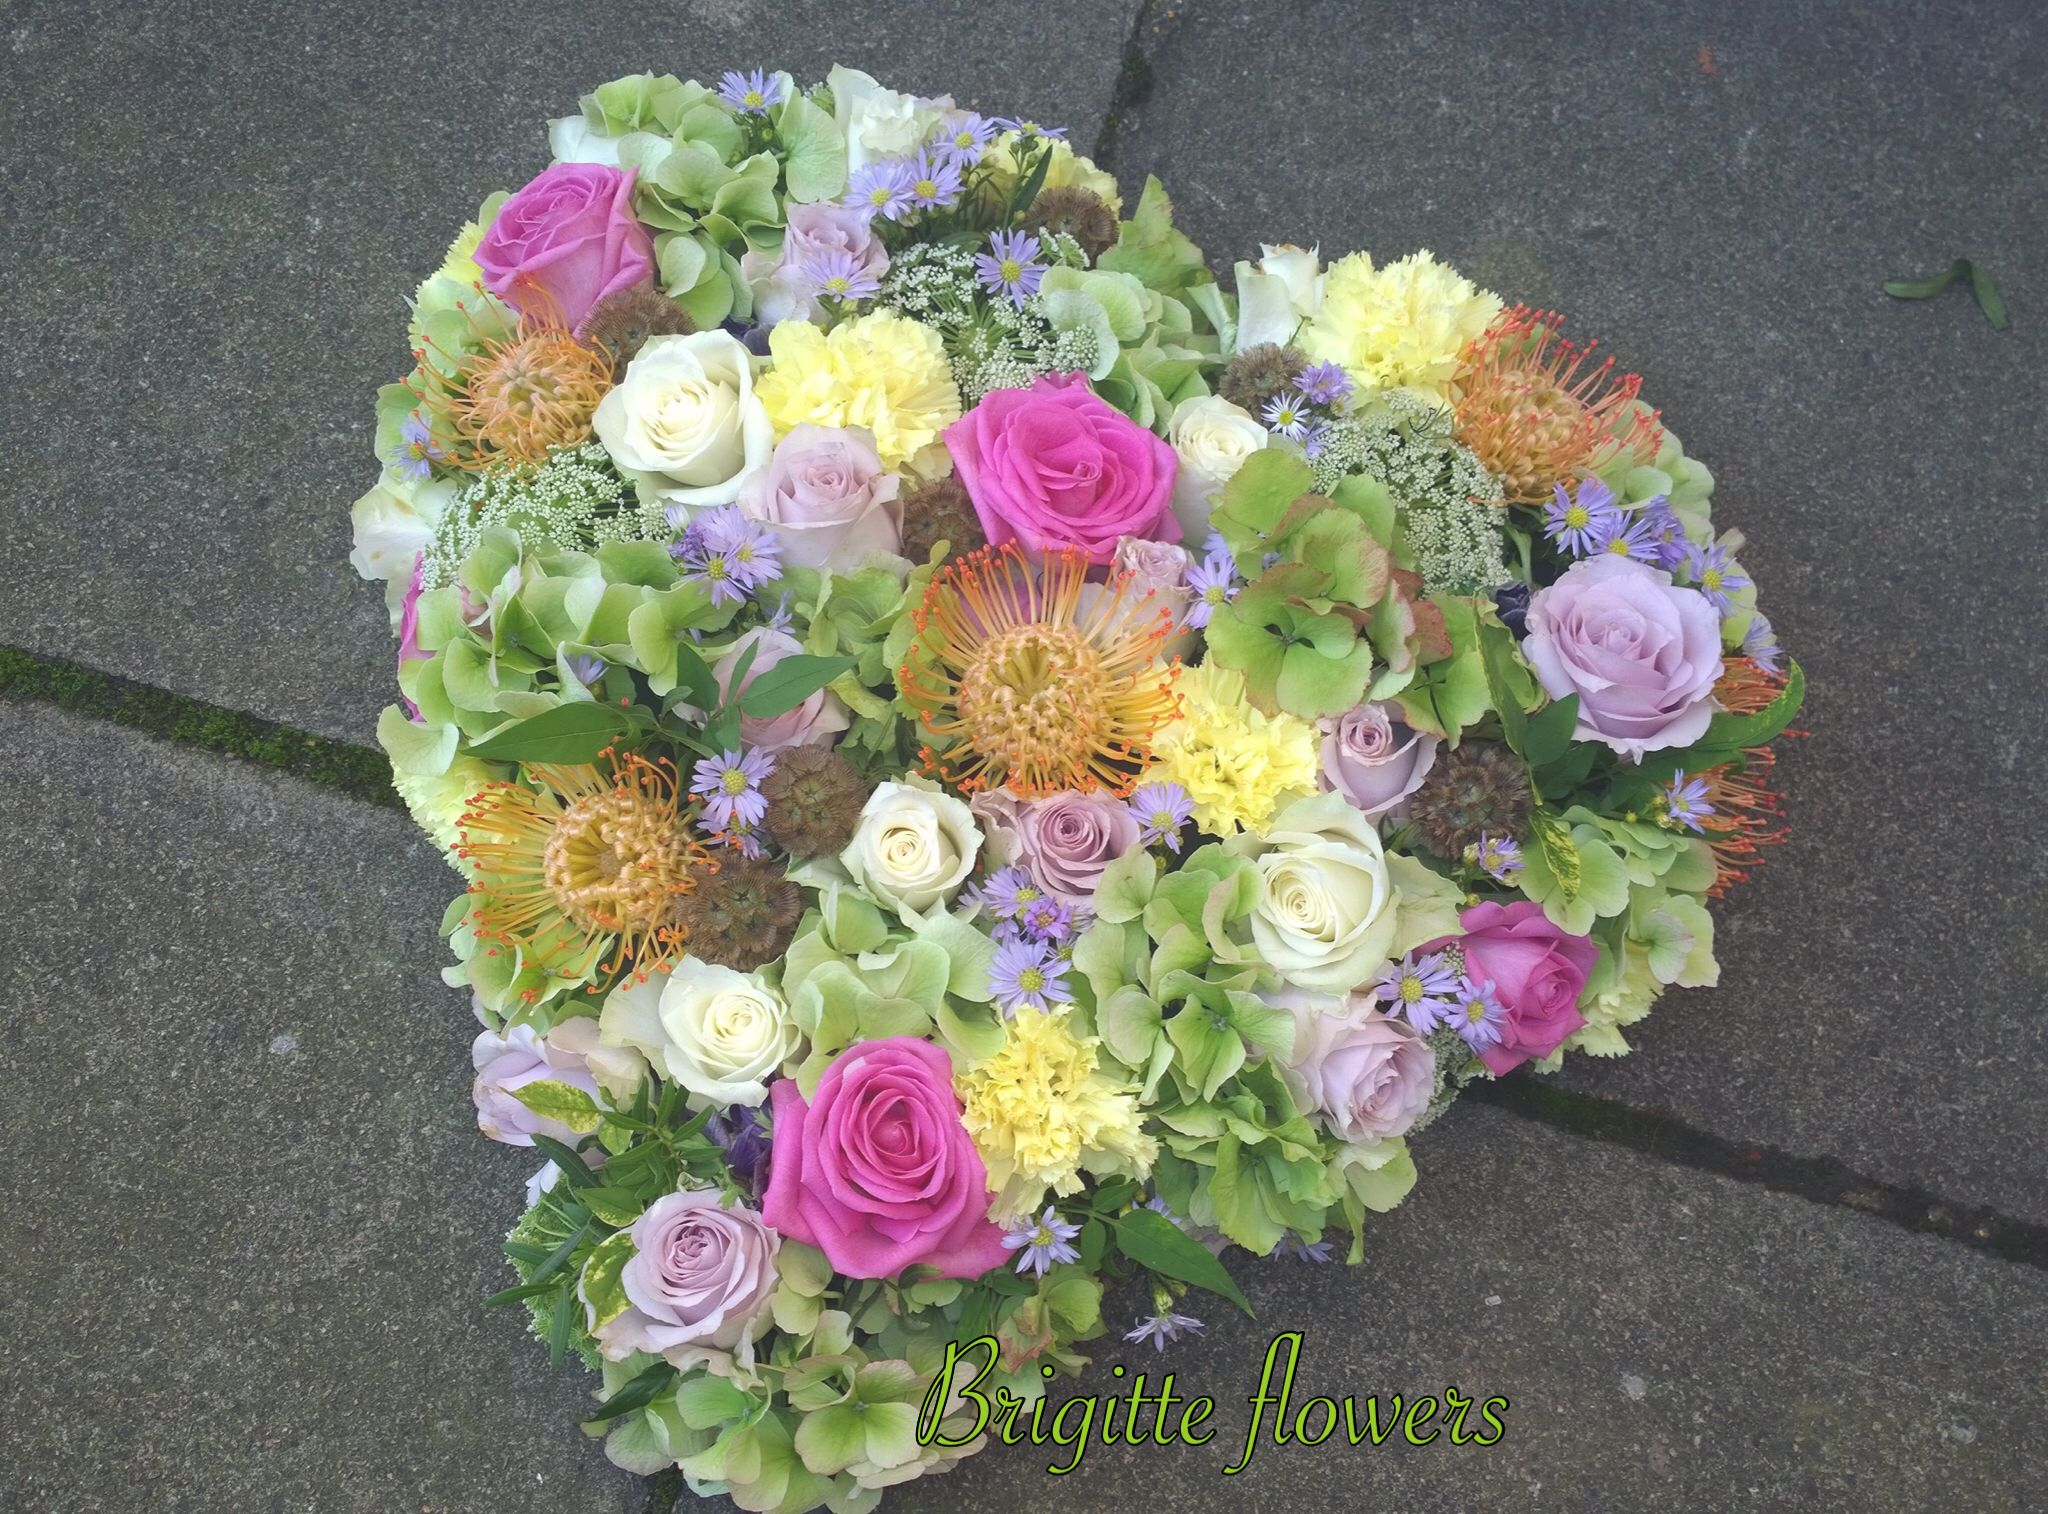 Www Brigitteflowers Co Uk We Love Flowers Flower Service Valentines Flowers Flower Arrangements